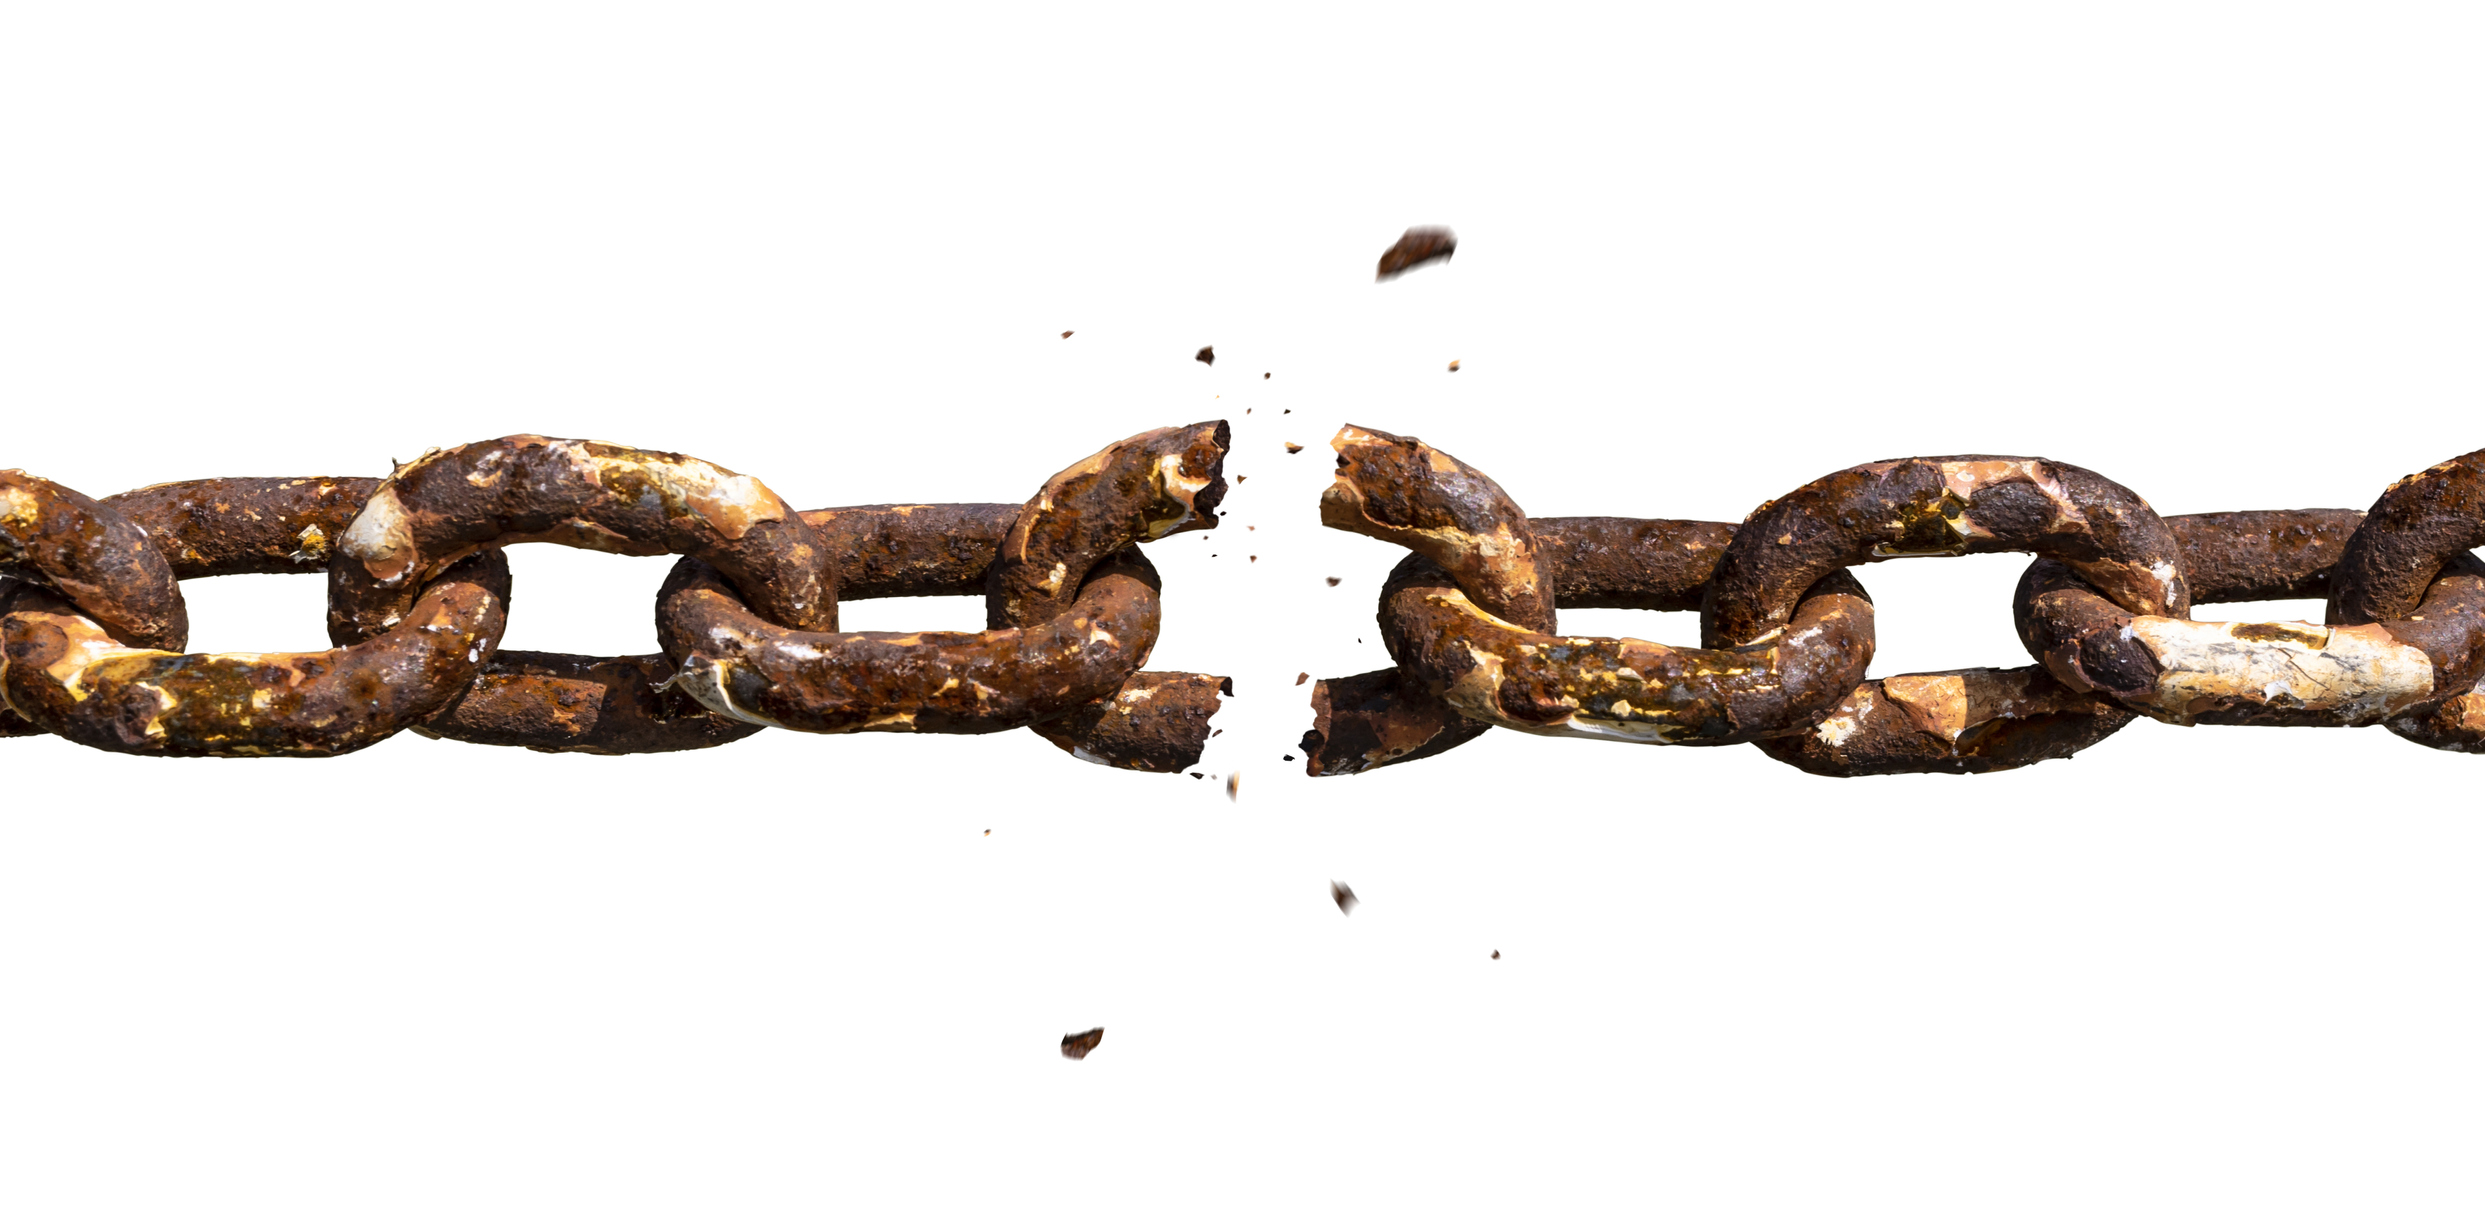 Weakest link breaking in old rusty chain photomontage